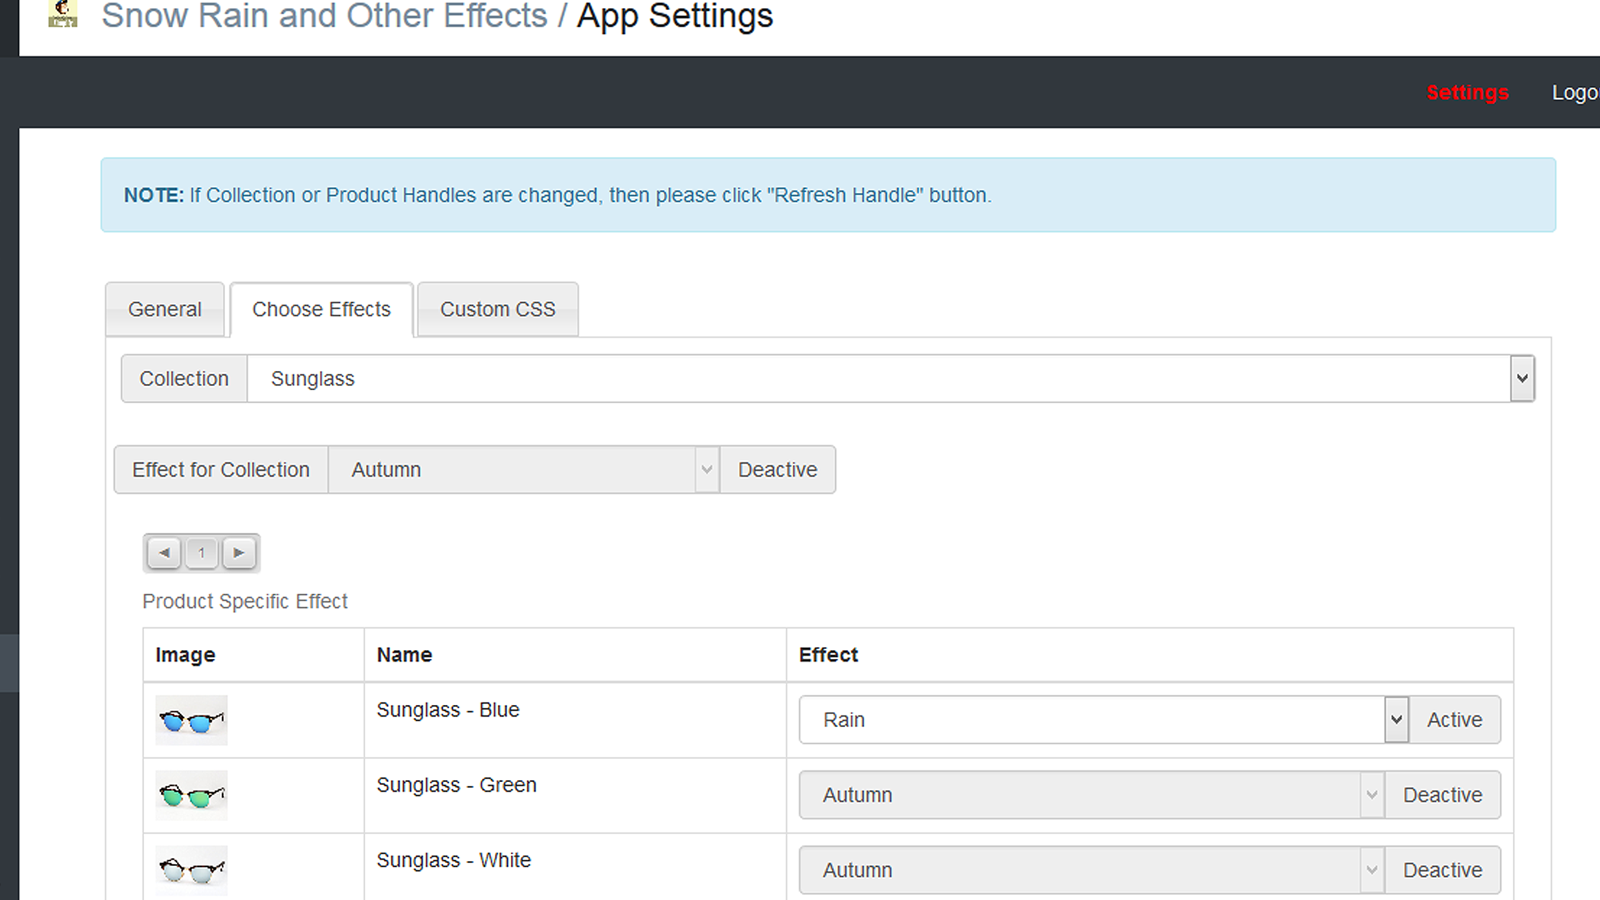 Effect settings in the app backend